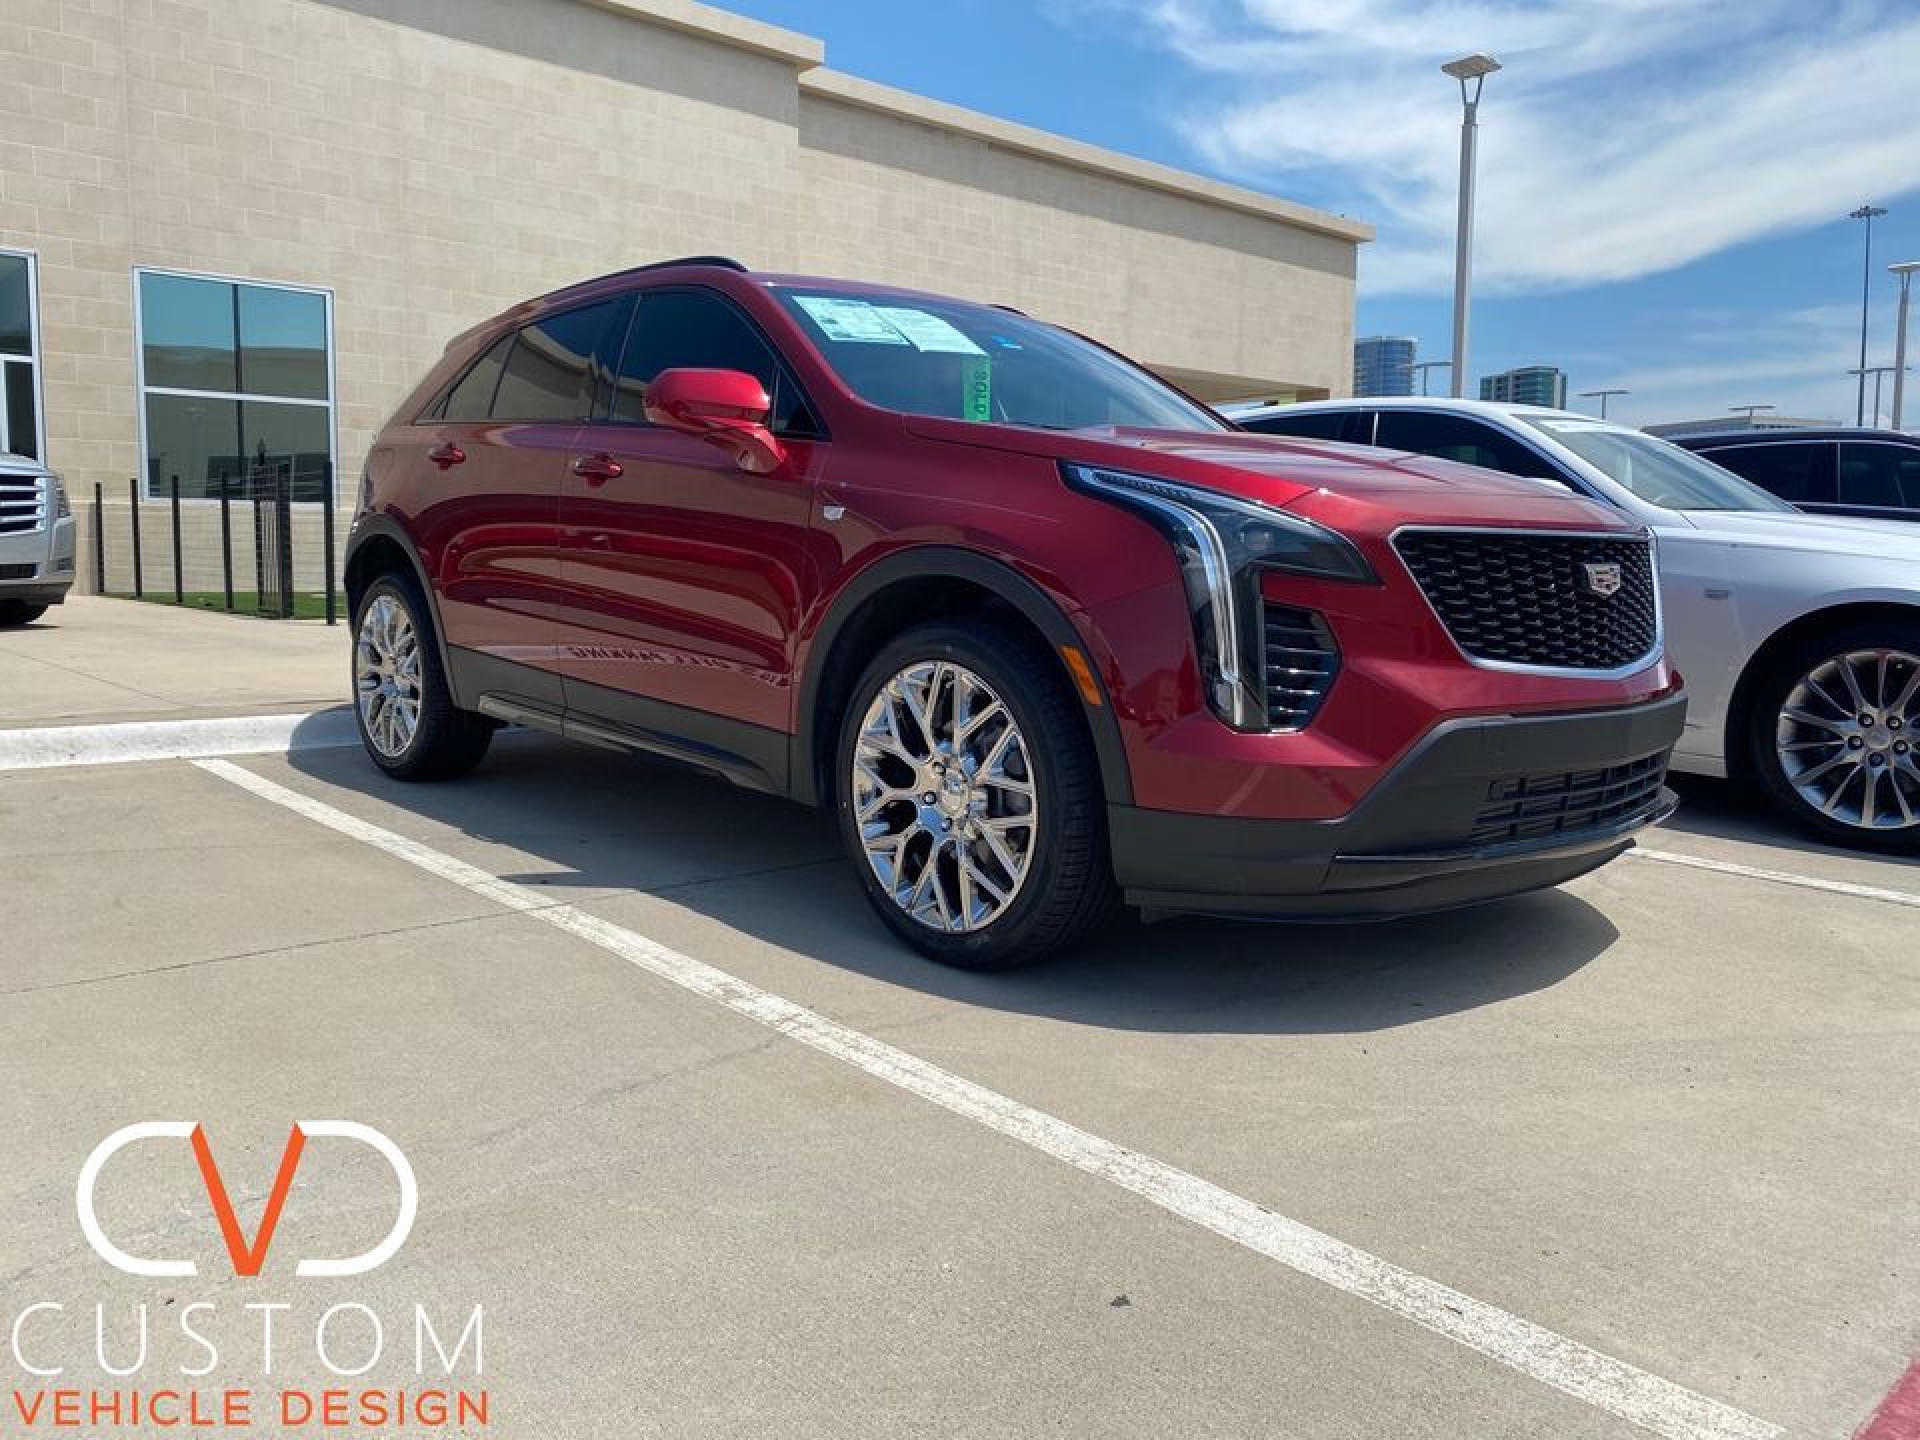 2020 Cadillac XT4 with Vogue VT375 wheels